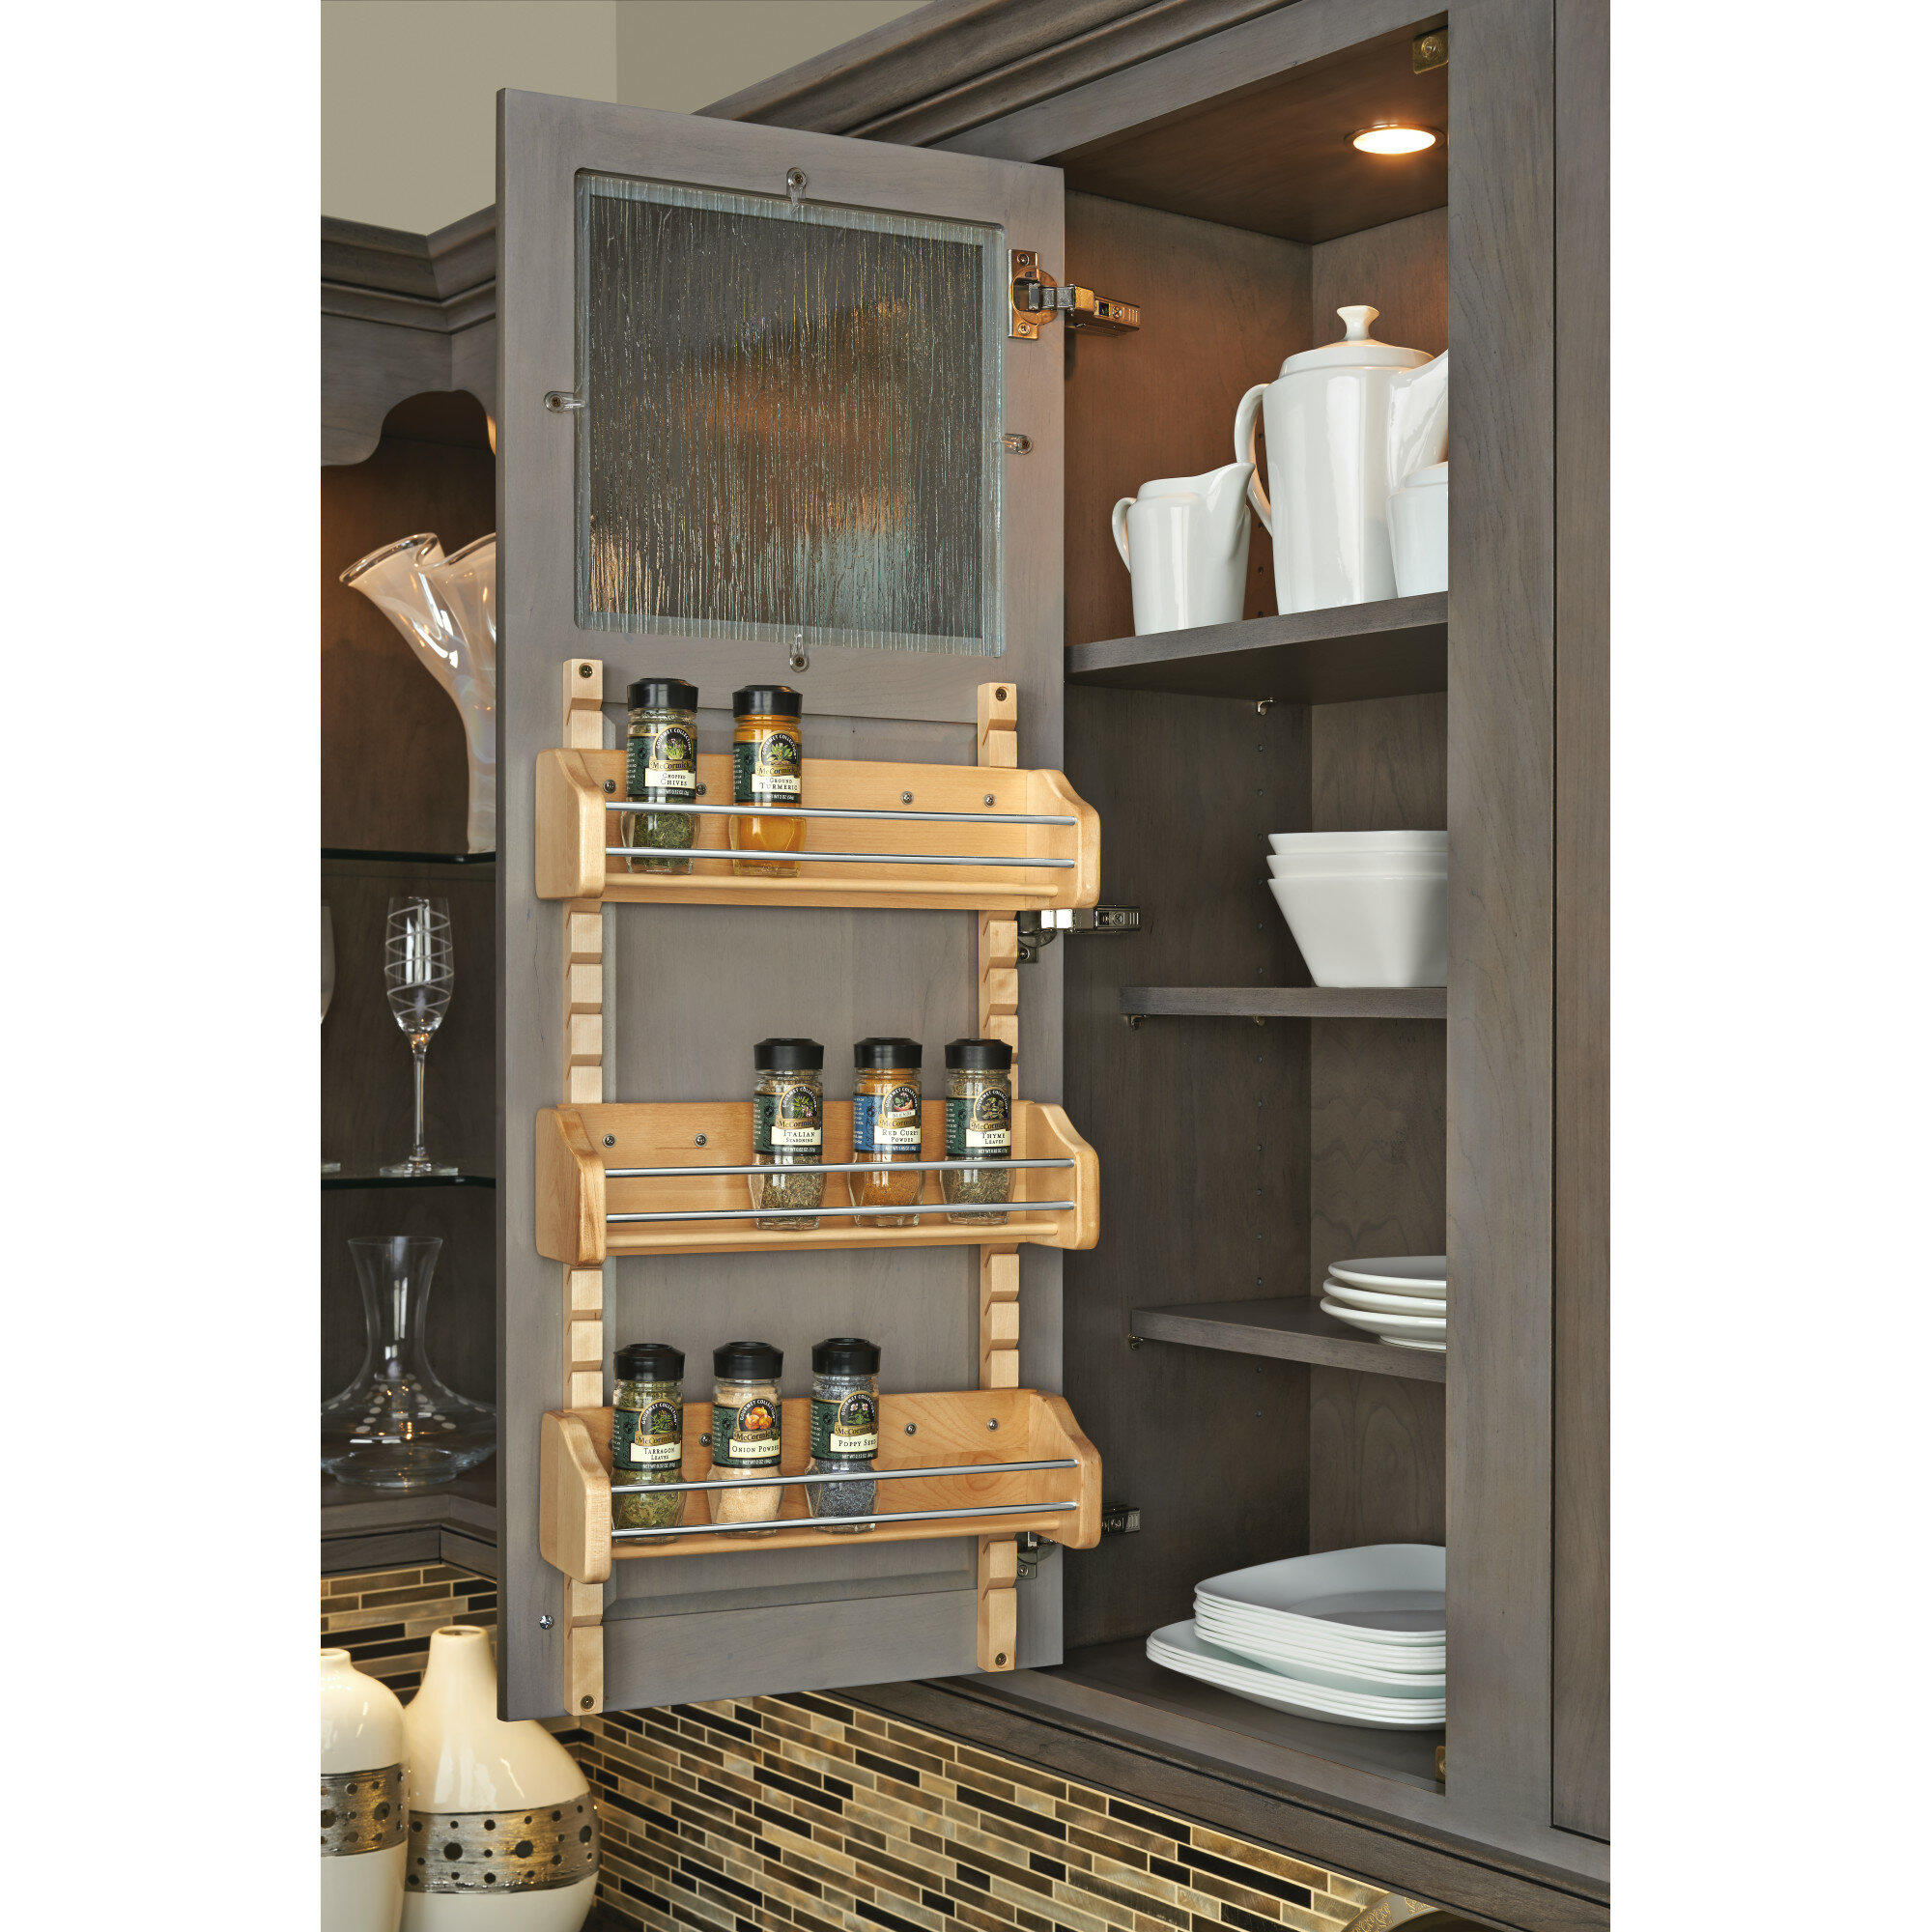 Charmant Rev A Shelf Adjustable Mount Spice Rack Cabinet Door Organizer U0026 Reviews |  Wayfair